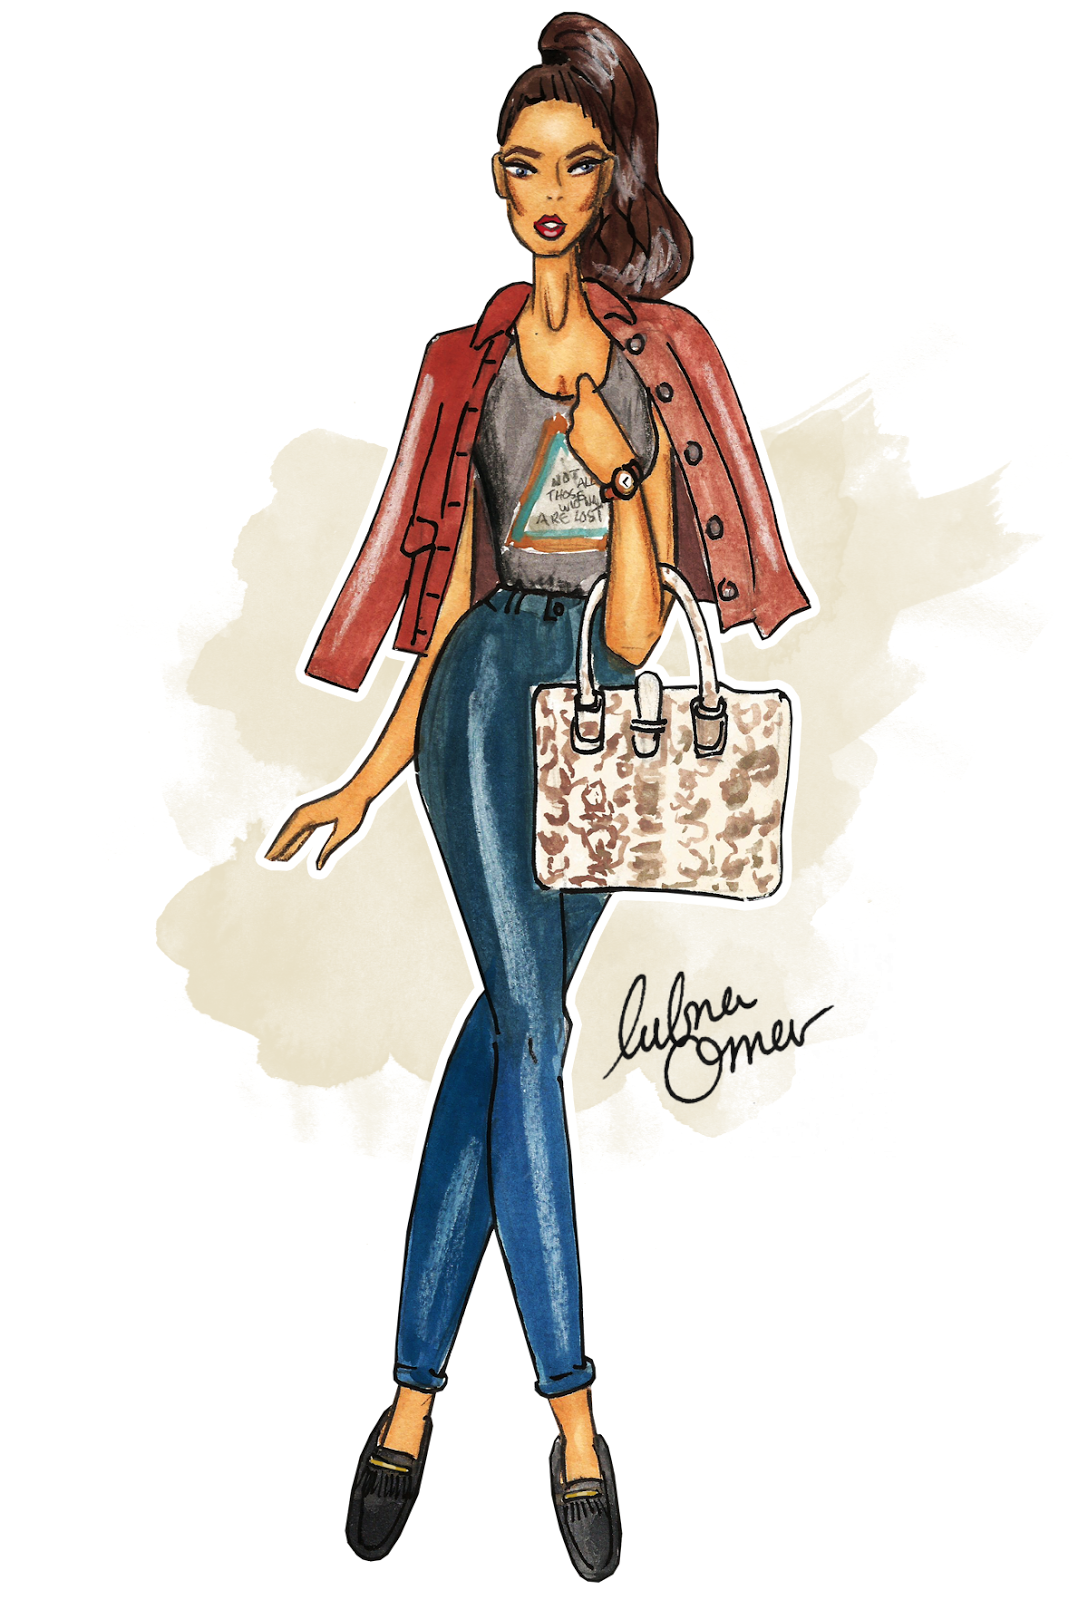 back to school outfit inspiration classics illustration by lubna omar